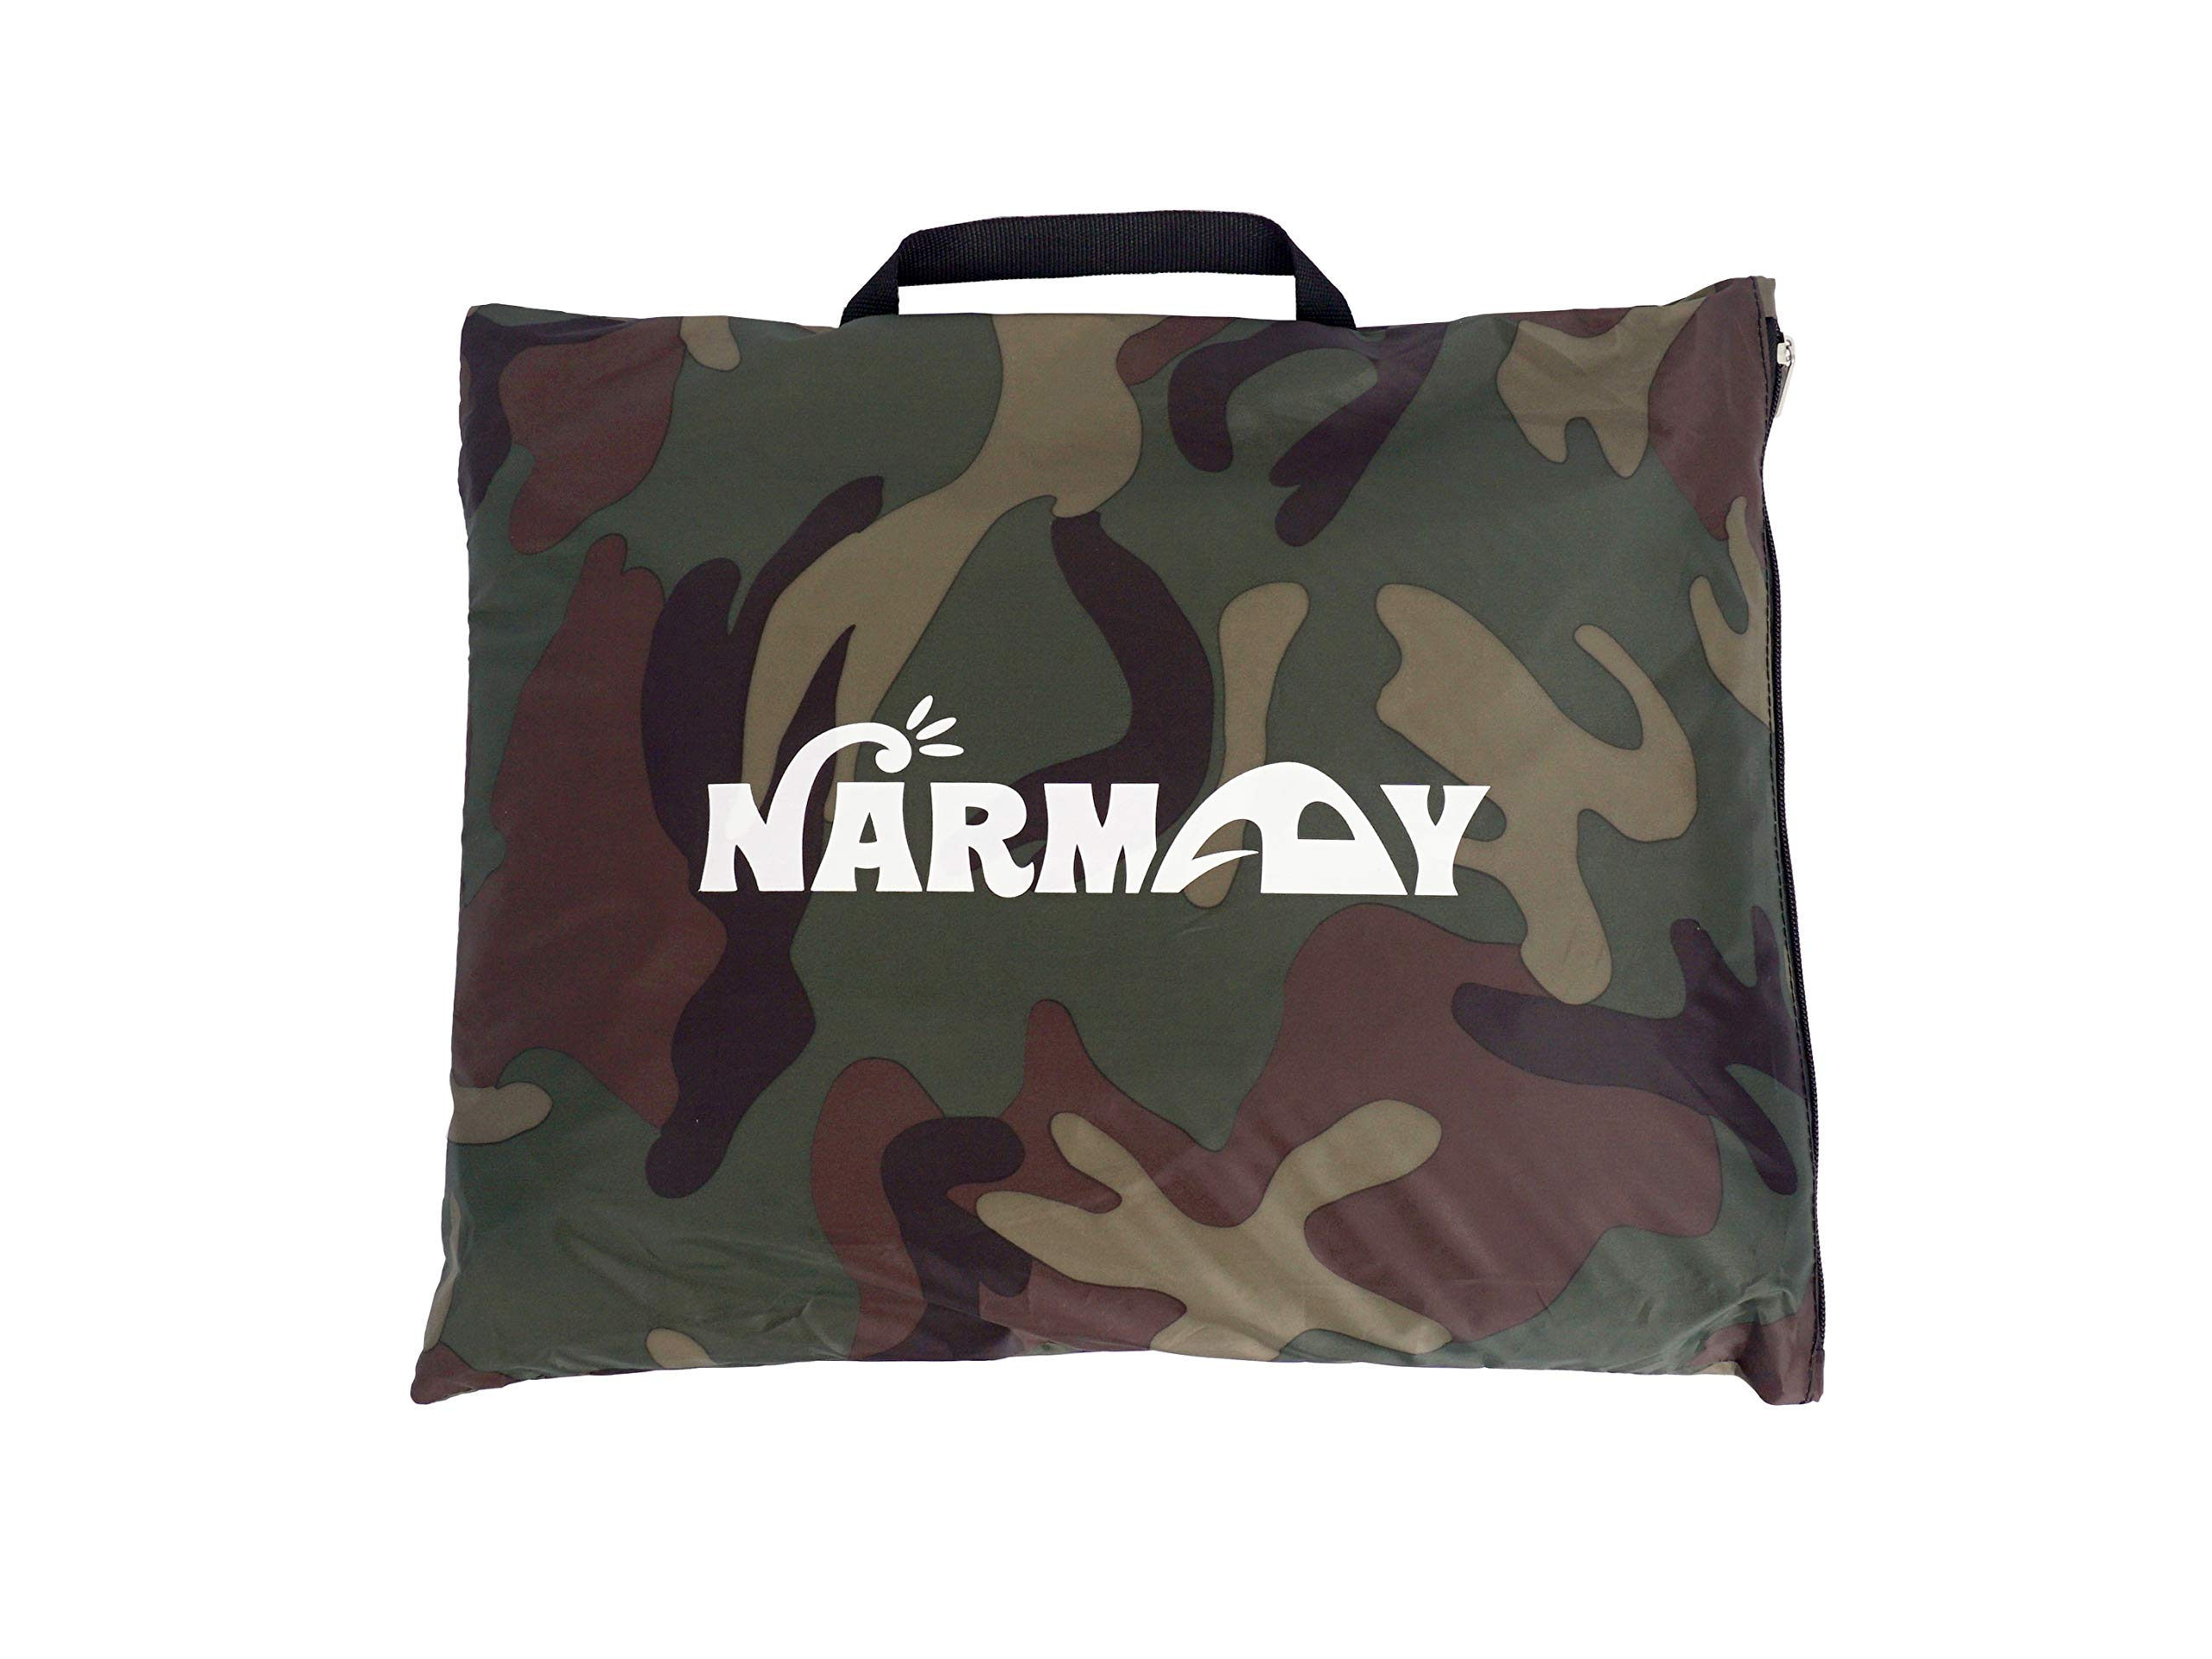 NARMAY Play Tent Camouflage Dome Tent for Kids Indoor / Outdoor Fun - 60 x 60 x 44 inch by NARMAY (Image #4)